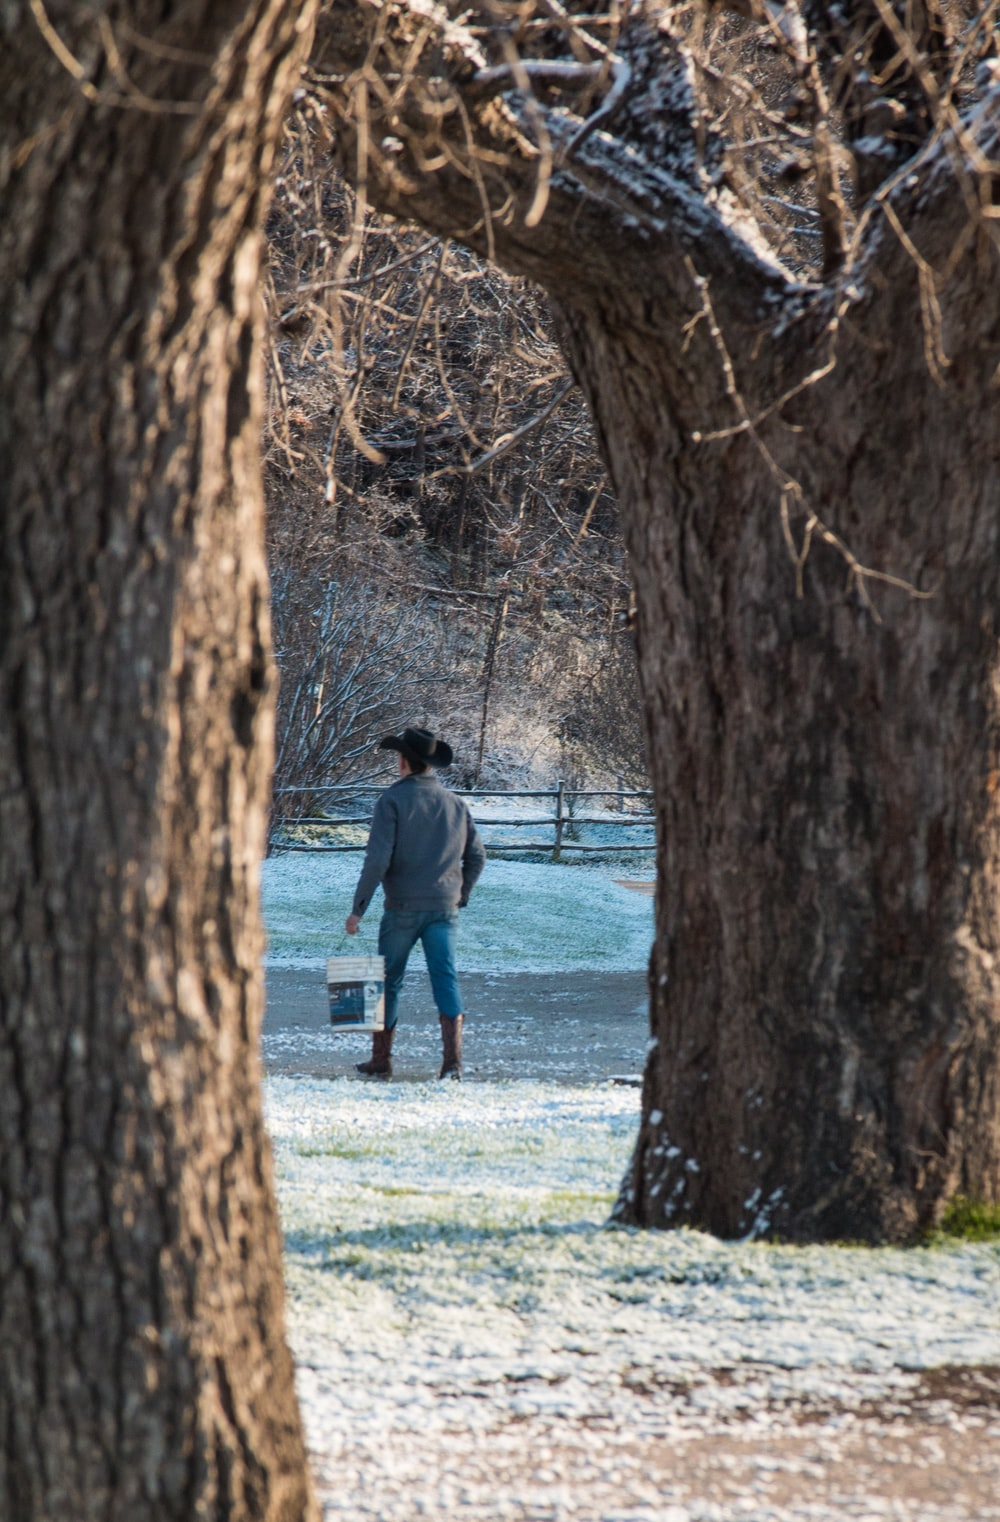 man and woman walking on green grass field near body of water during daytime